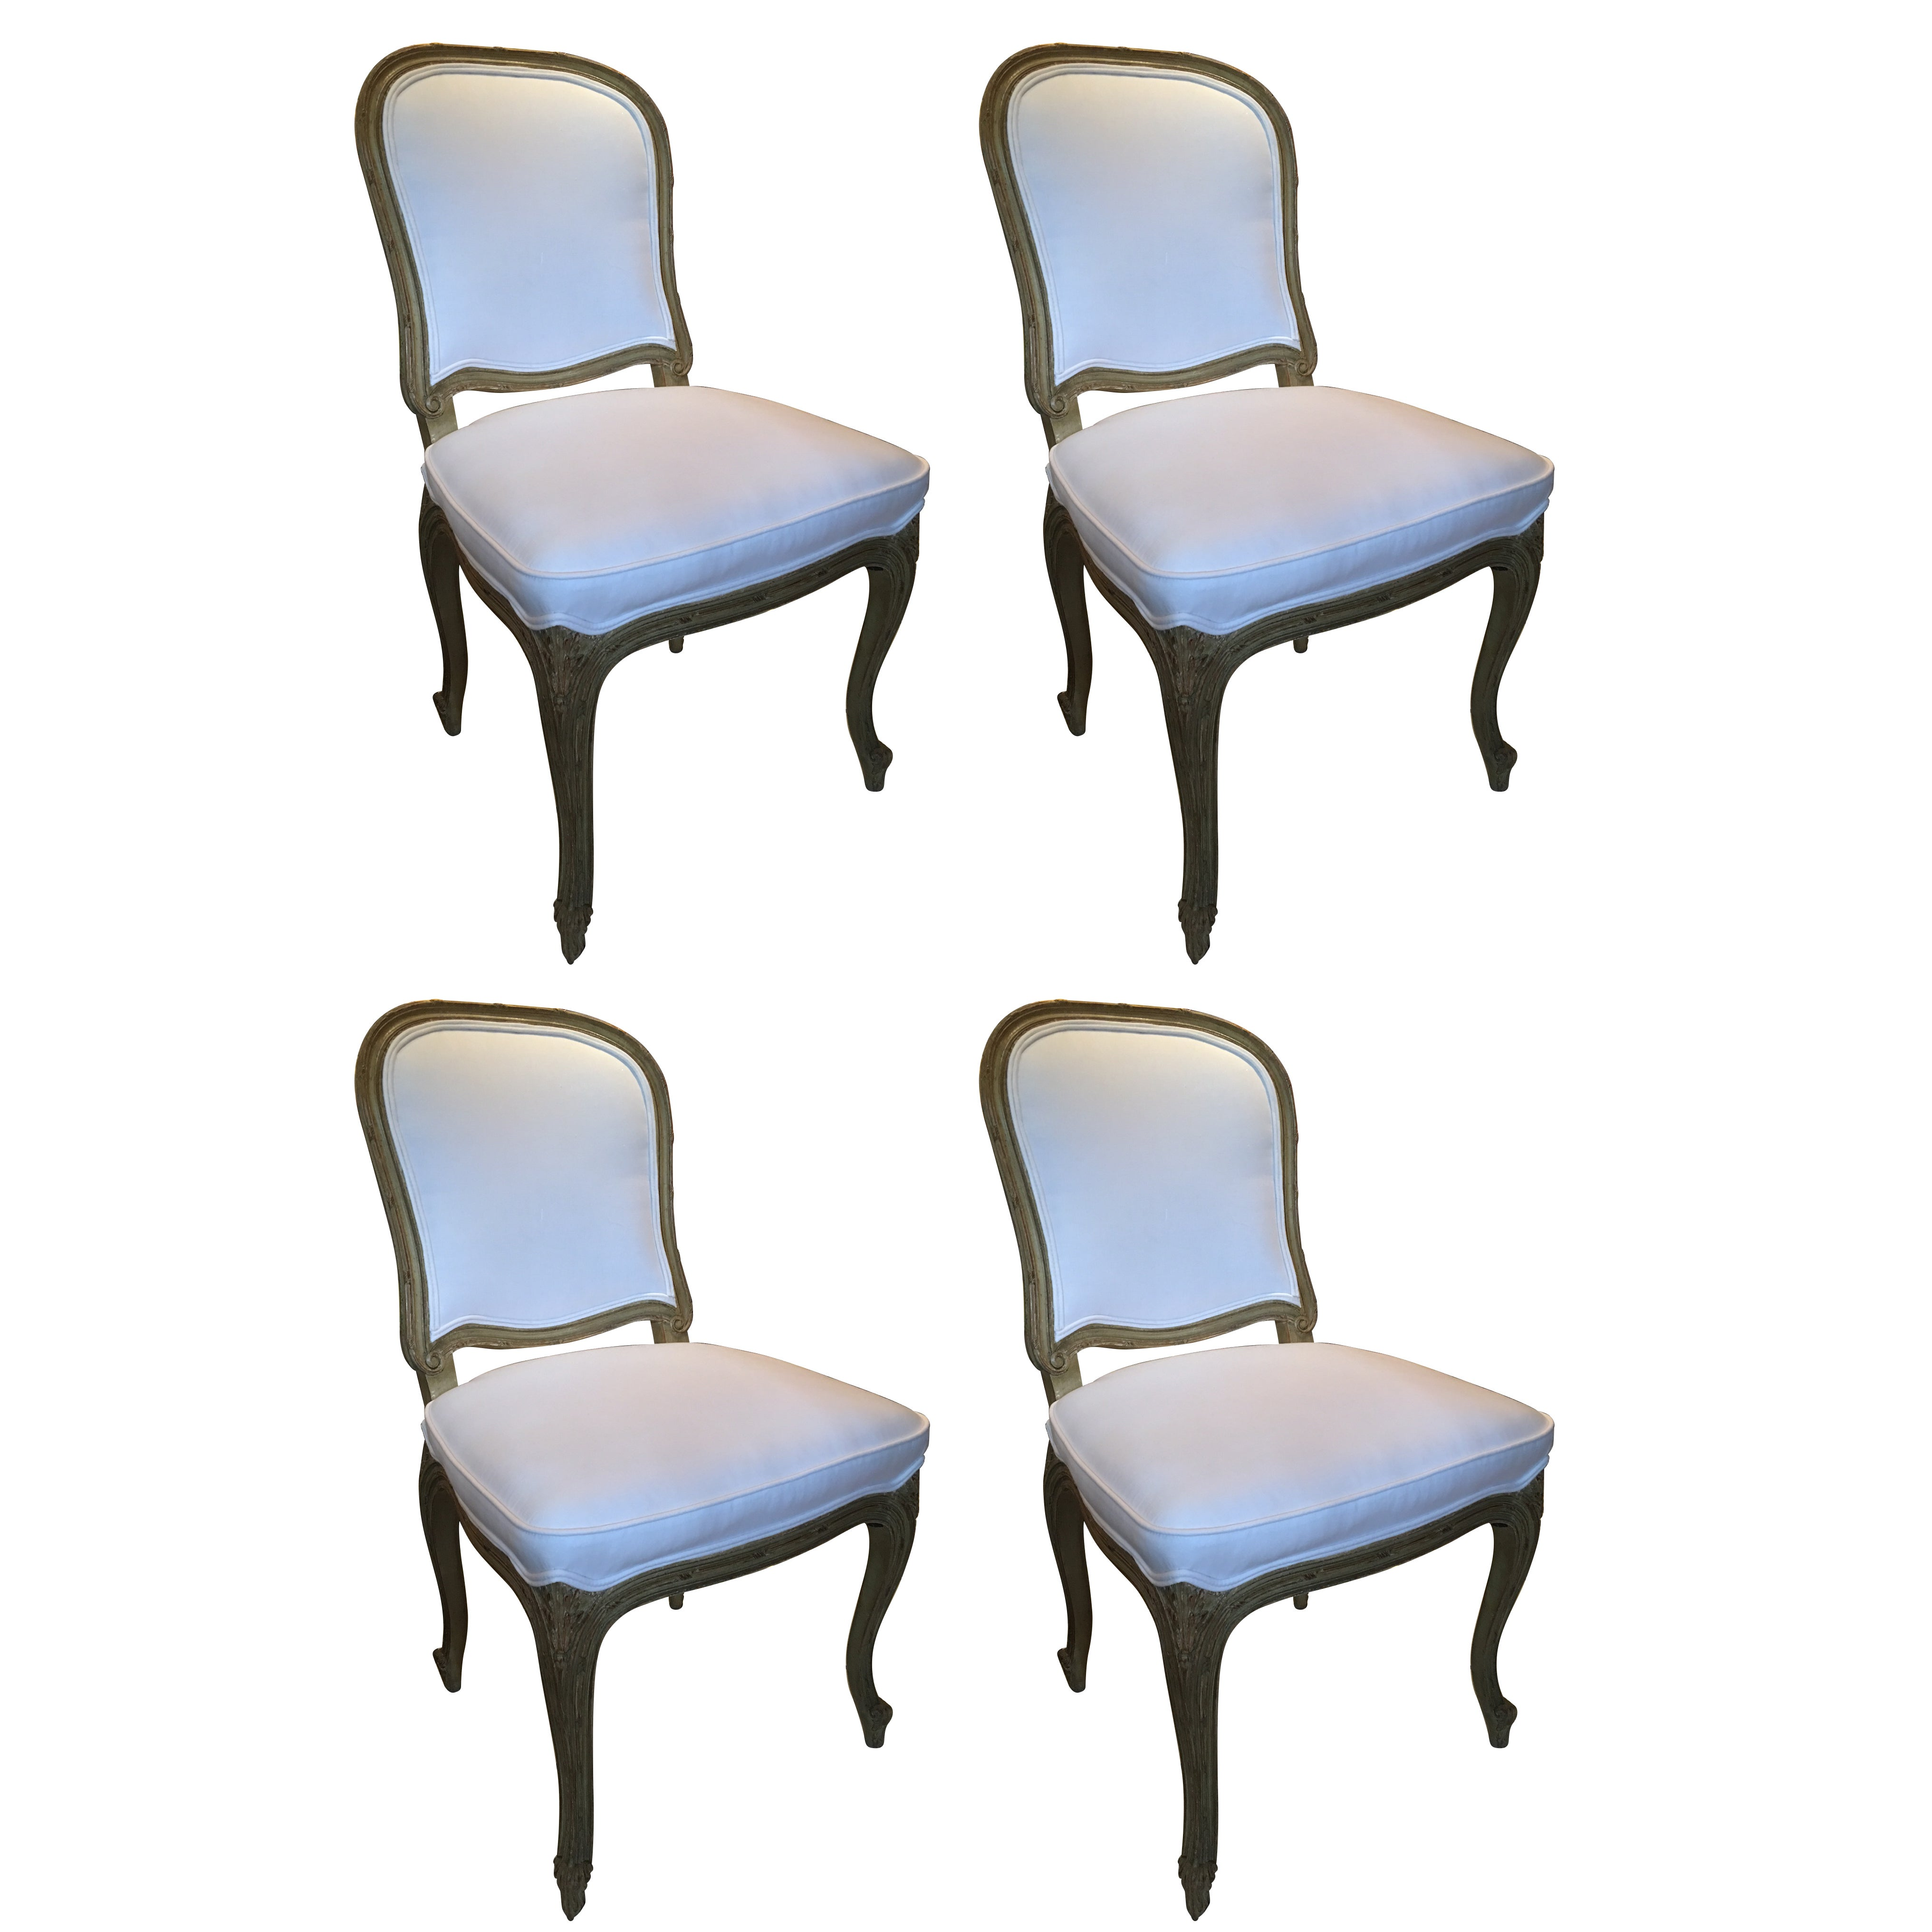 Set of Four Painted Louis XVI Style Dining Chairs, Mid-20th Century